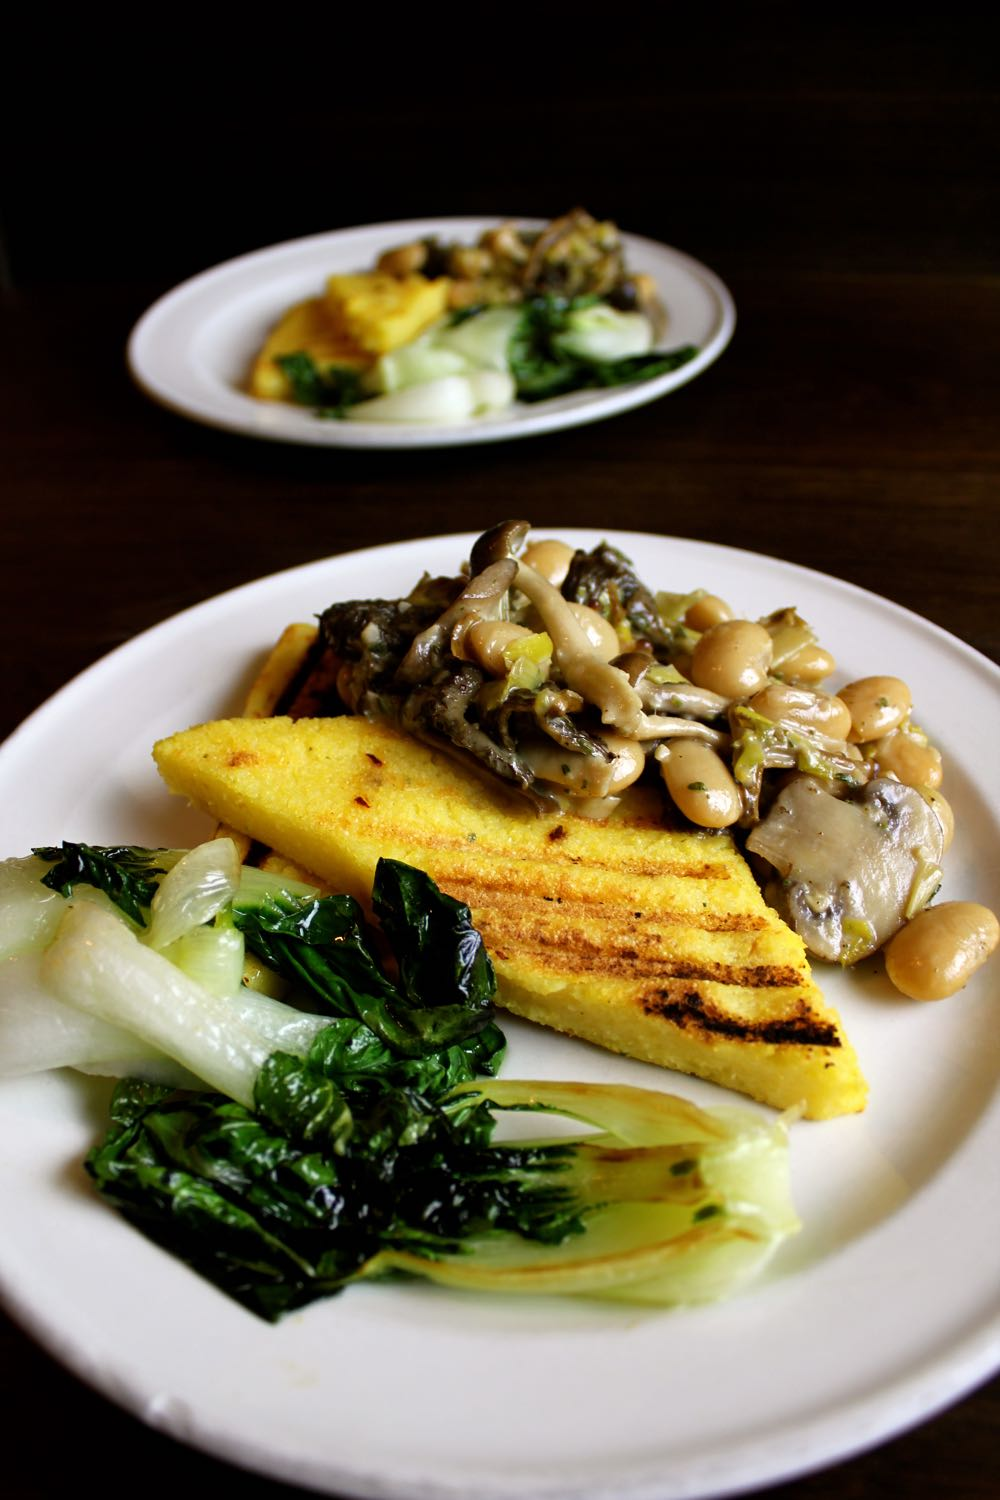 Polenta Bruschetta served with a mushroom and butter bean stew and pak choi